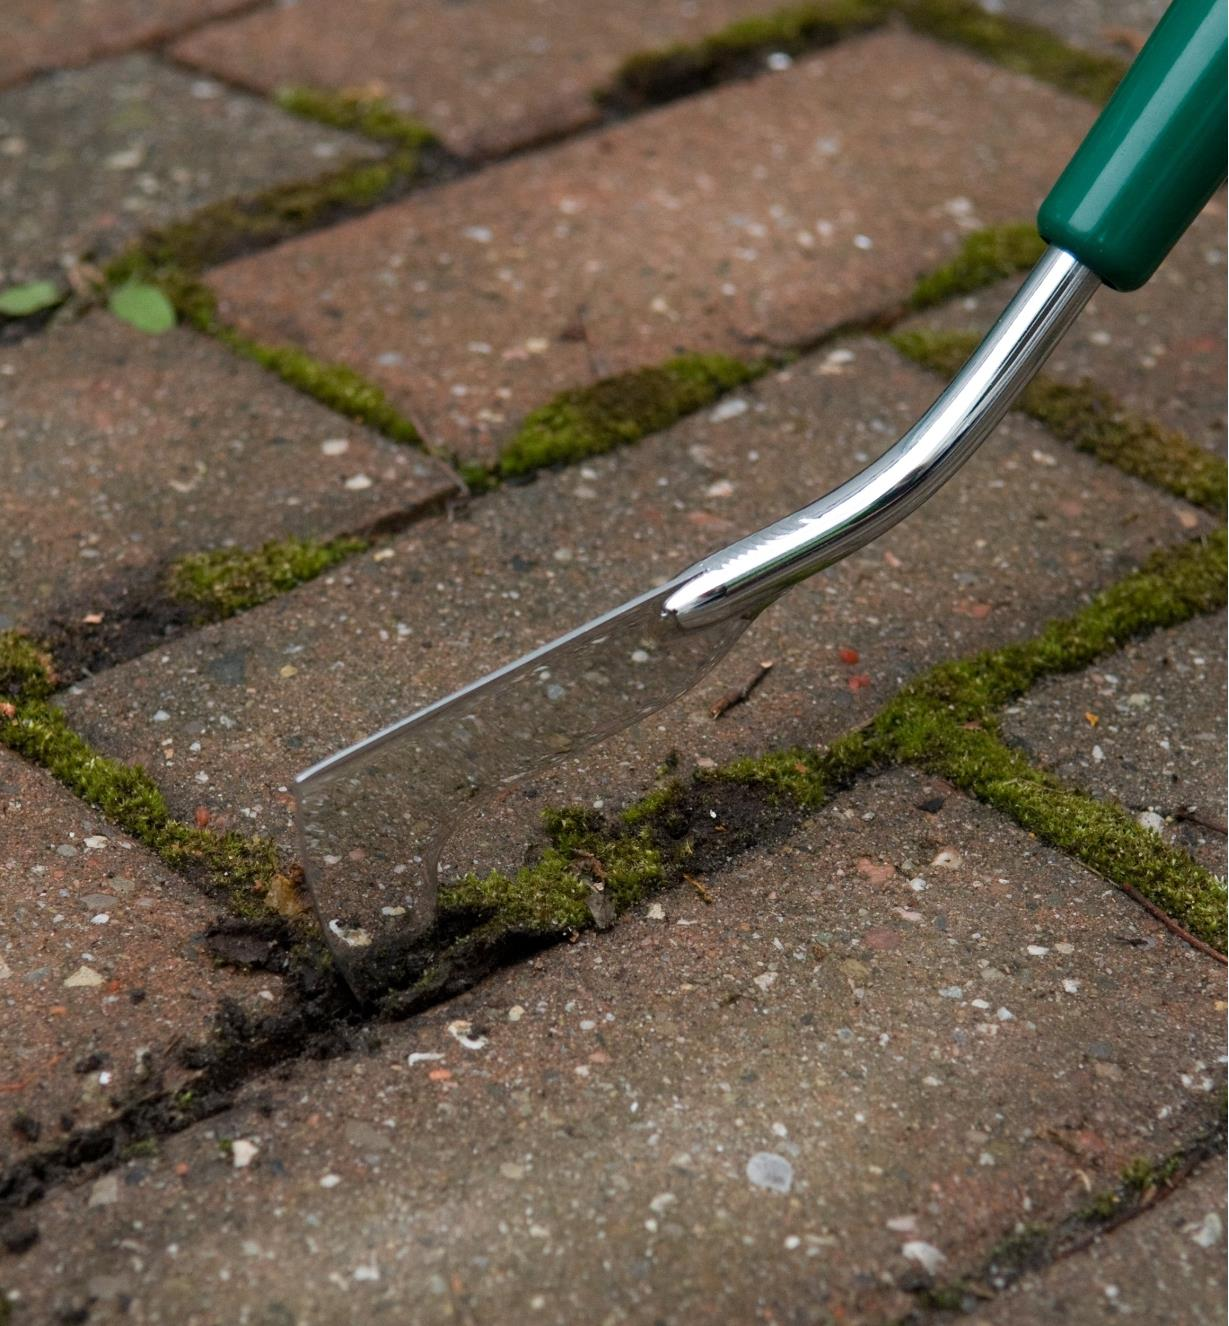 Close-up of Lee Valley Blade Cultivator removing moss from between paving stones